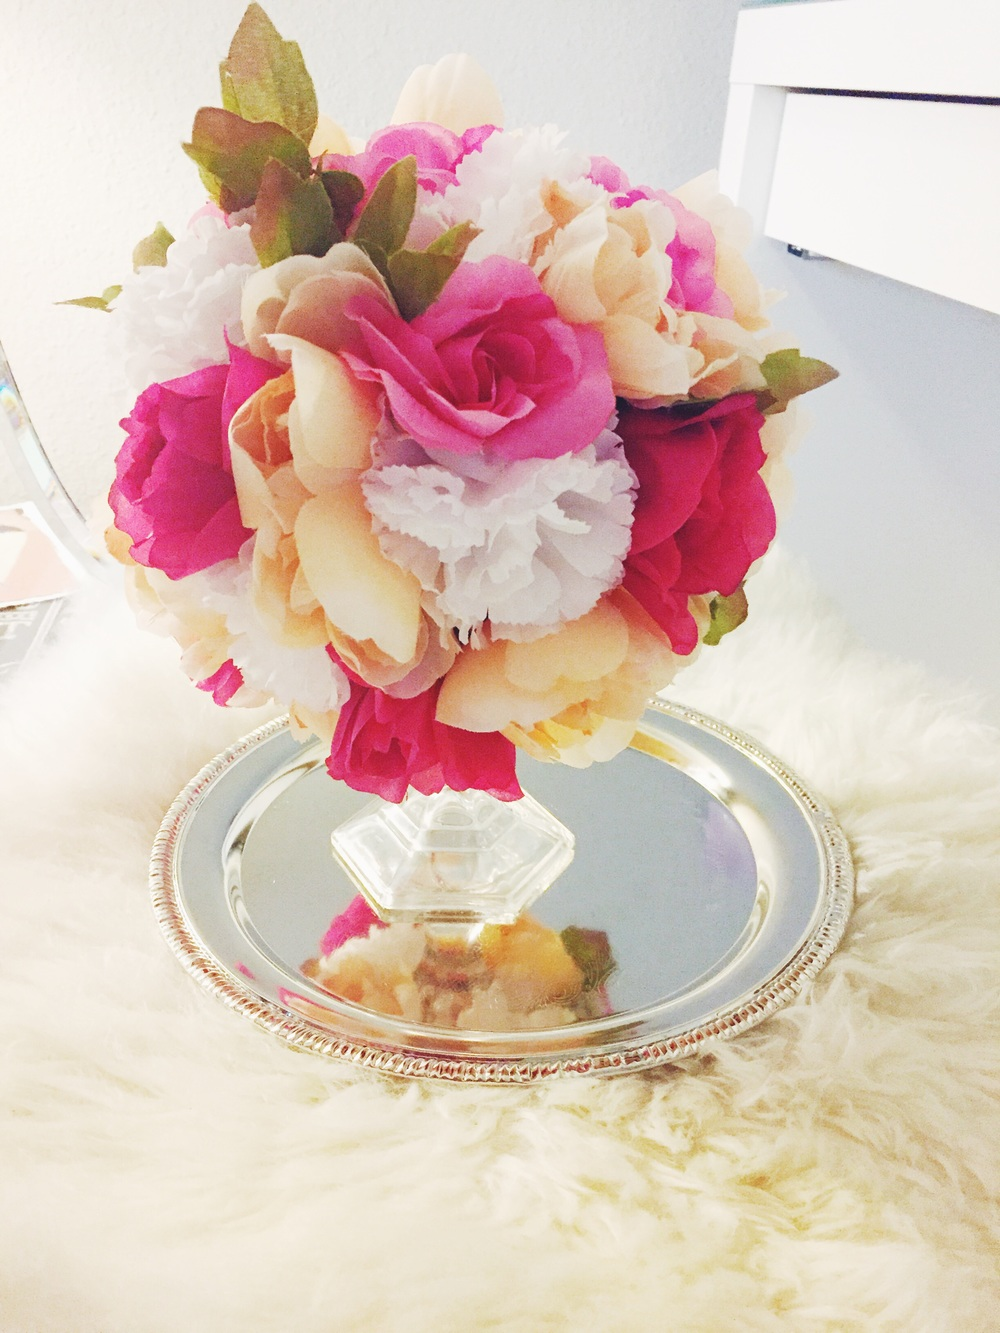 DIY Floral Sphere Center Piece